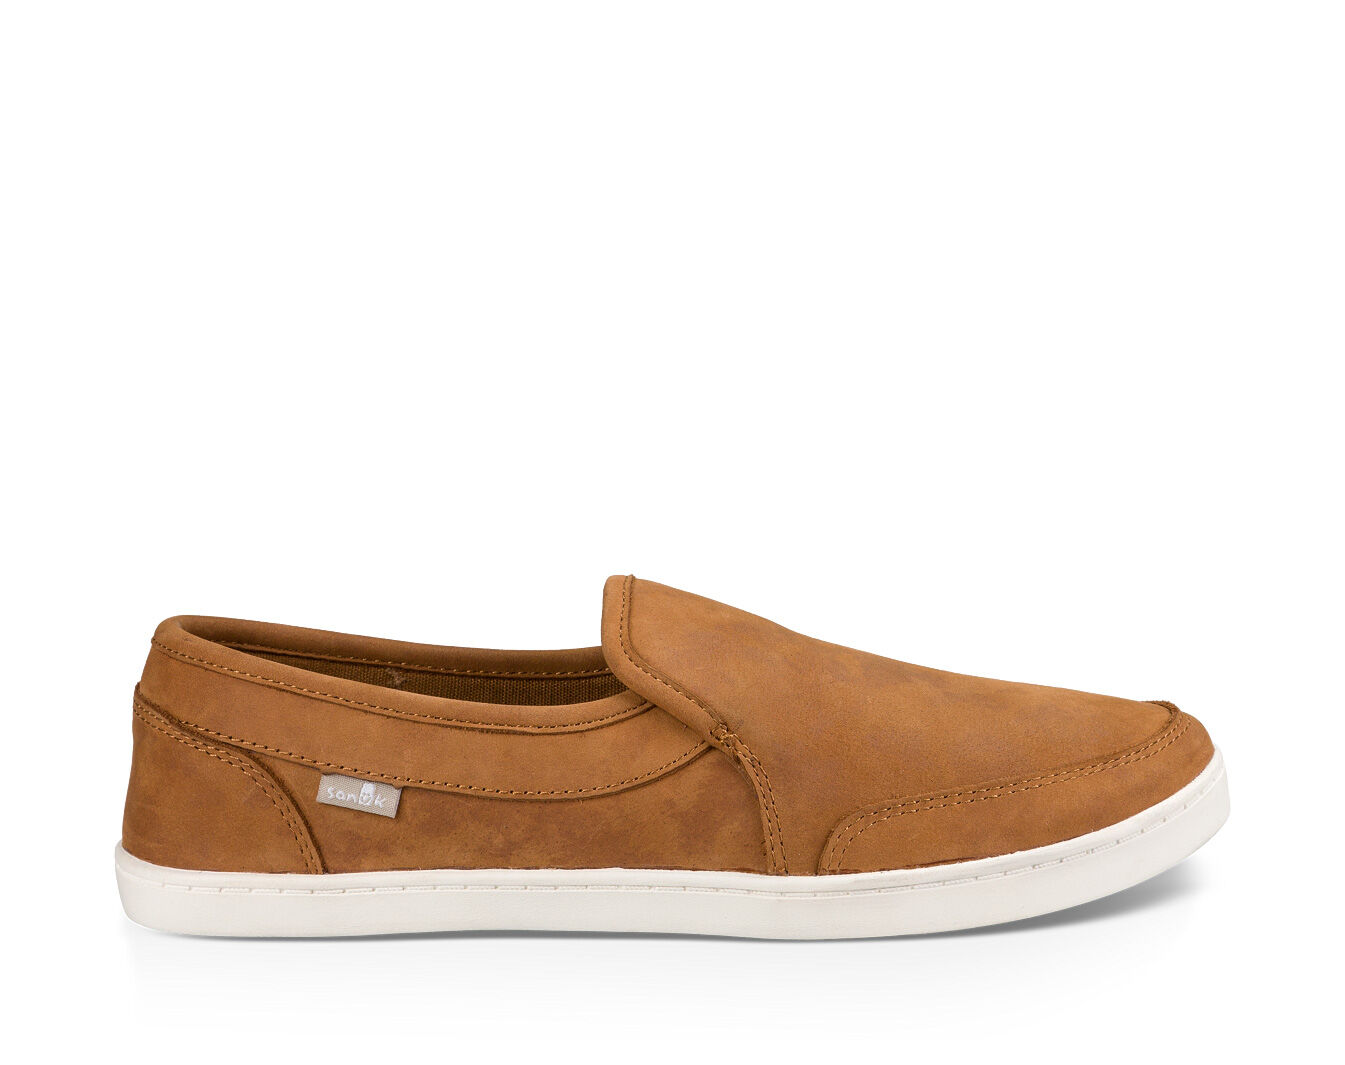 Pair O Dice Leather Slip-on Sneakers